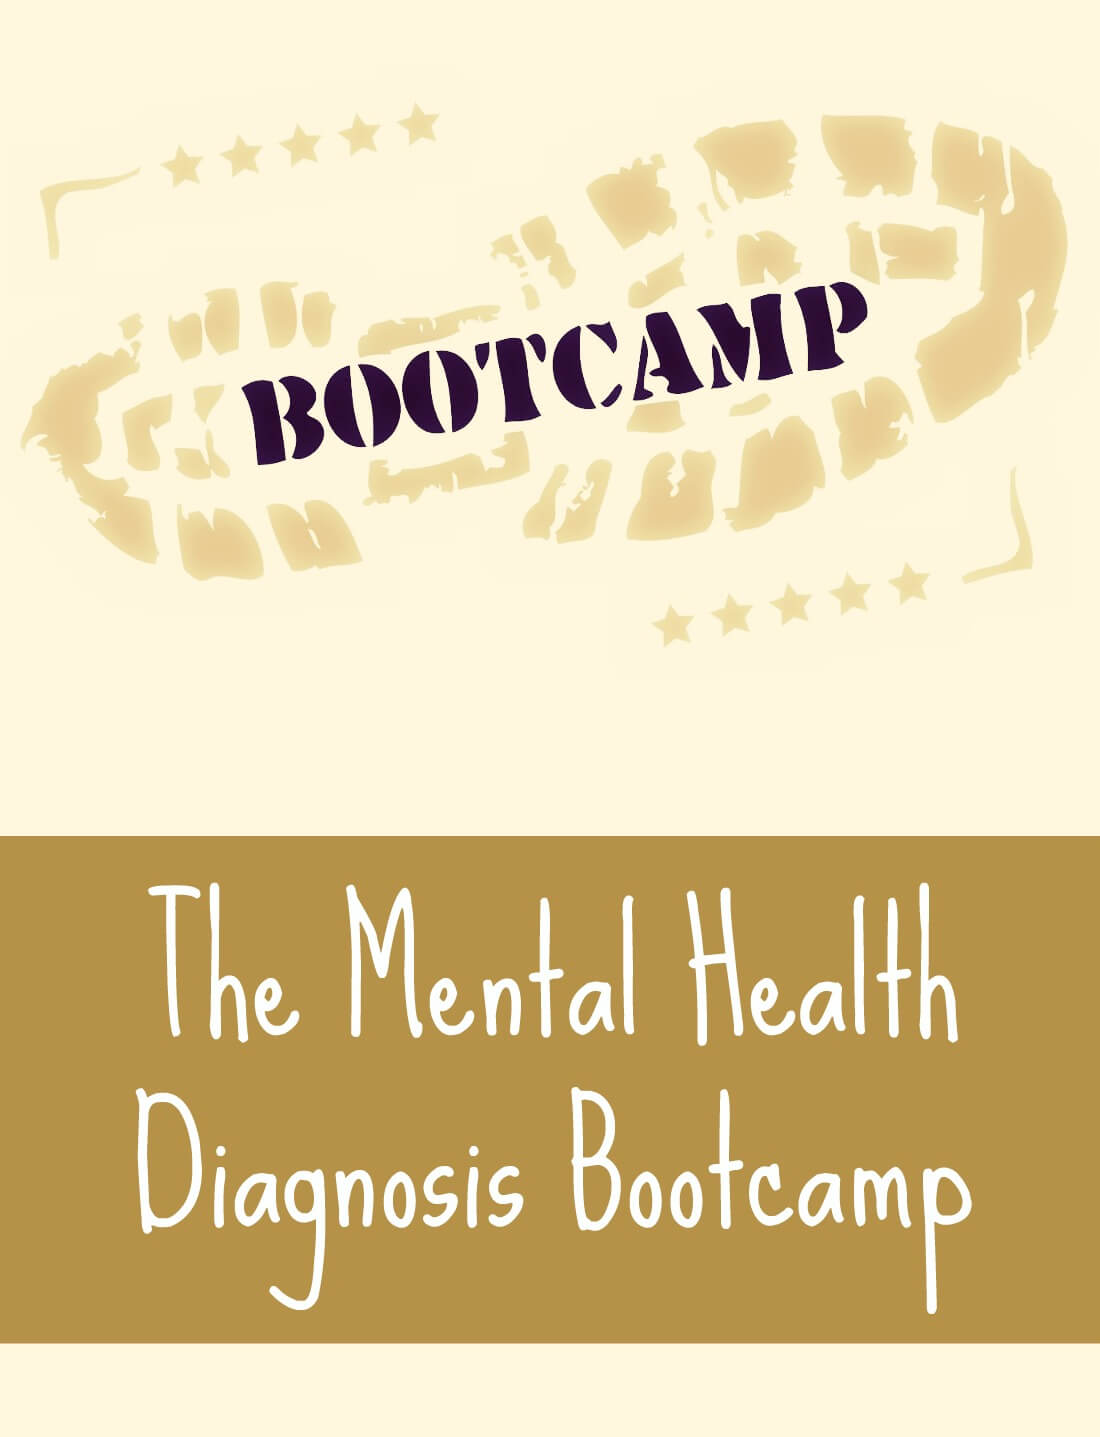 The-Mental-Health-Bootcamp